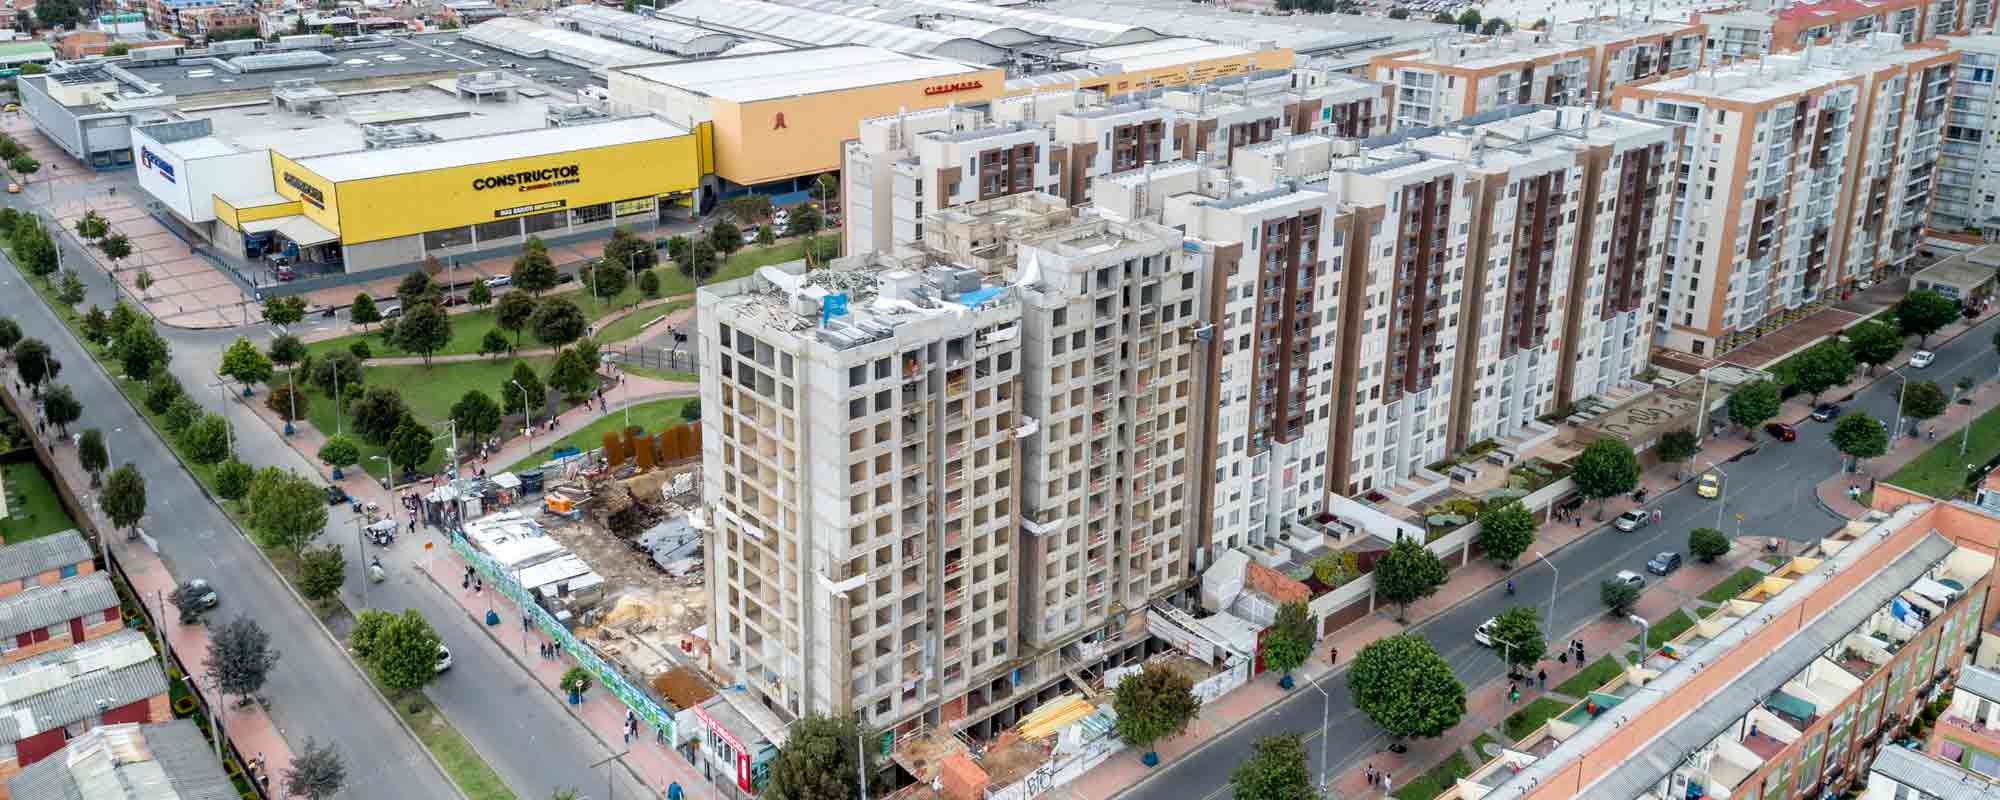 Apartments under construction at Arboleda del parque residential project October 2018